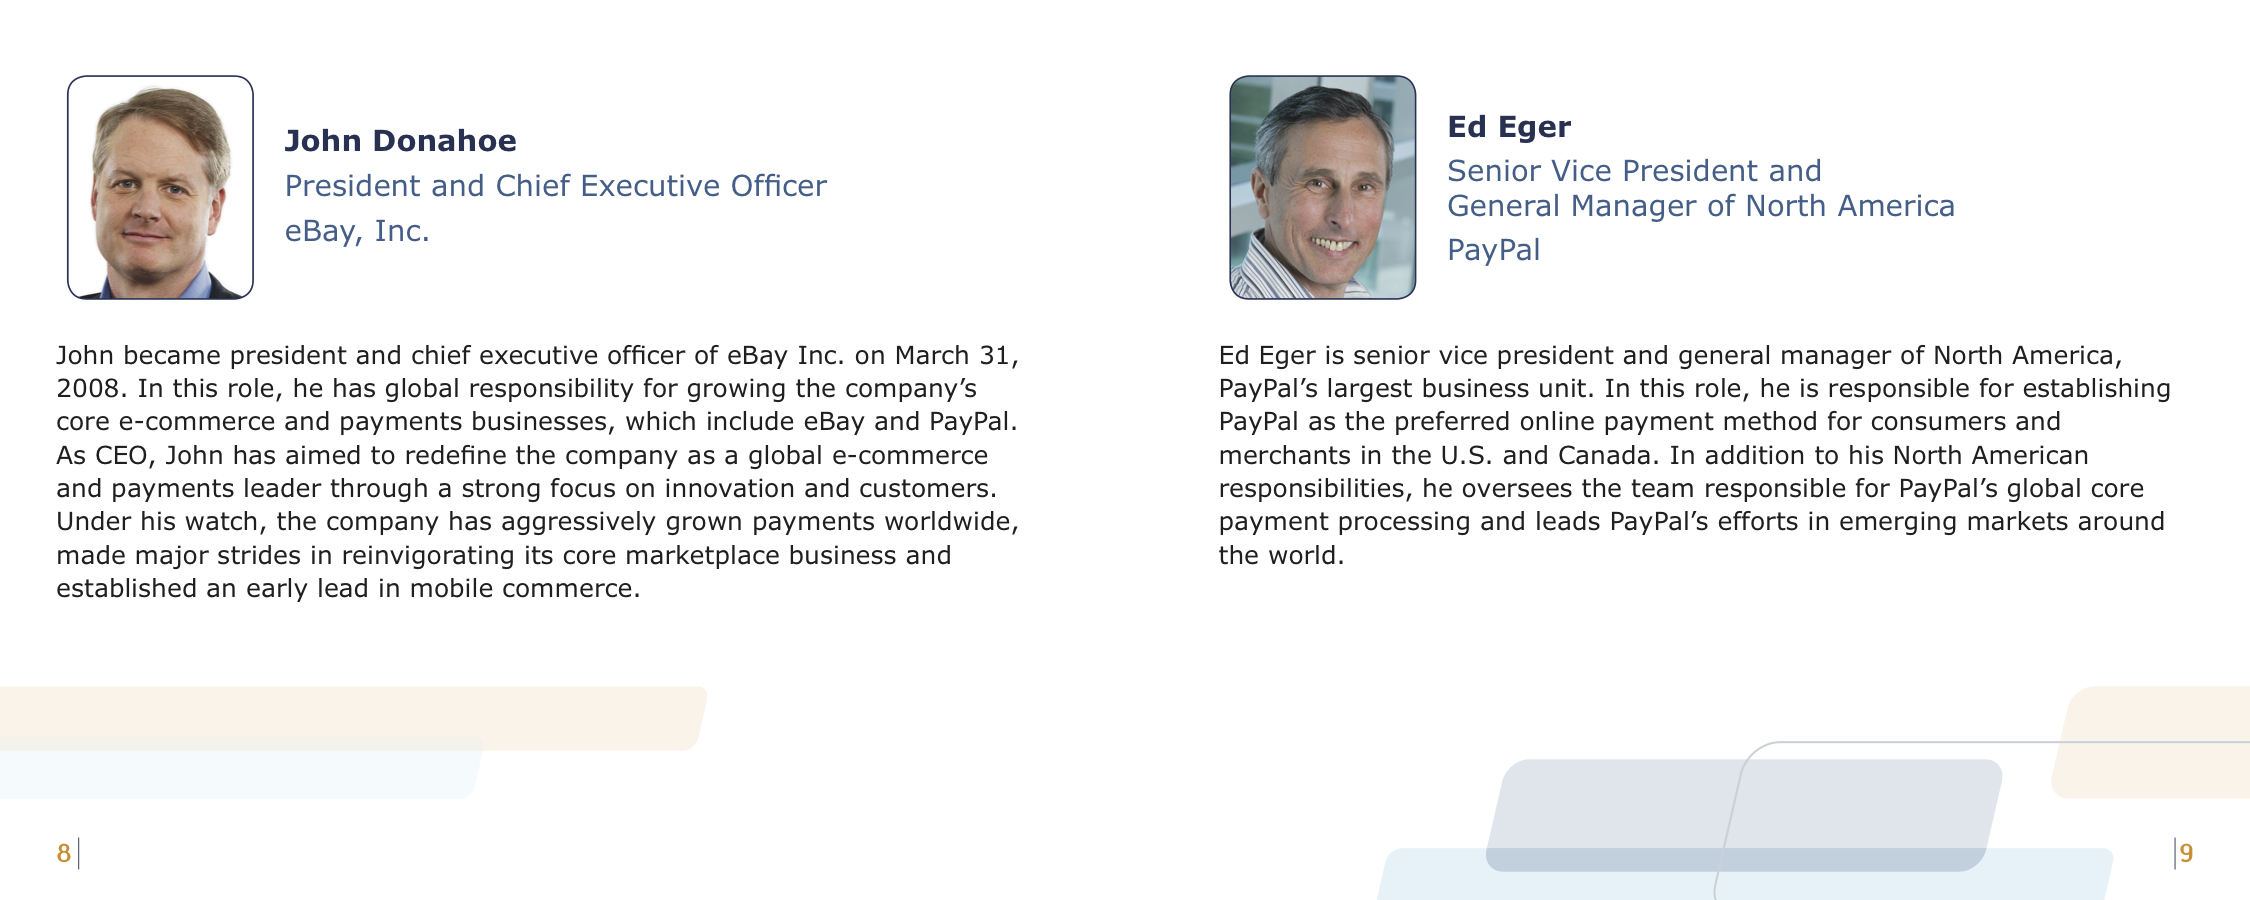 PayPal Customer Summit - Program of Events 8.jpg